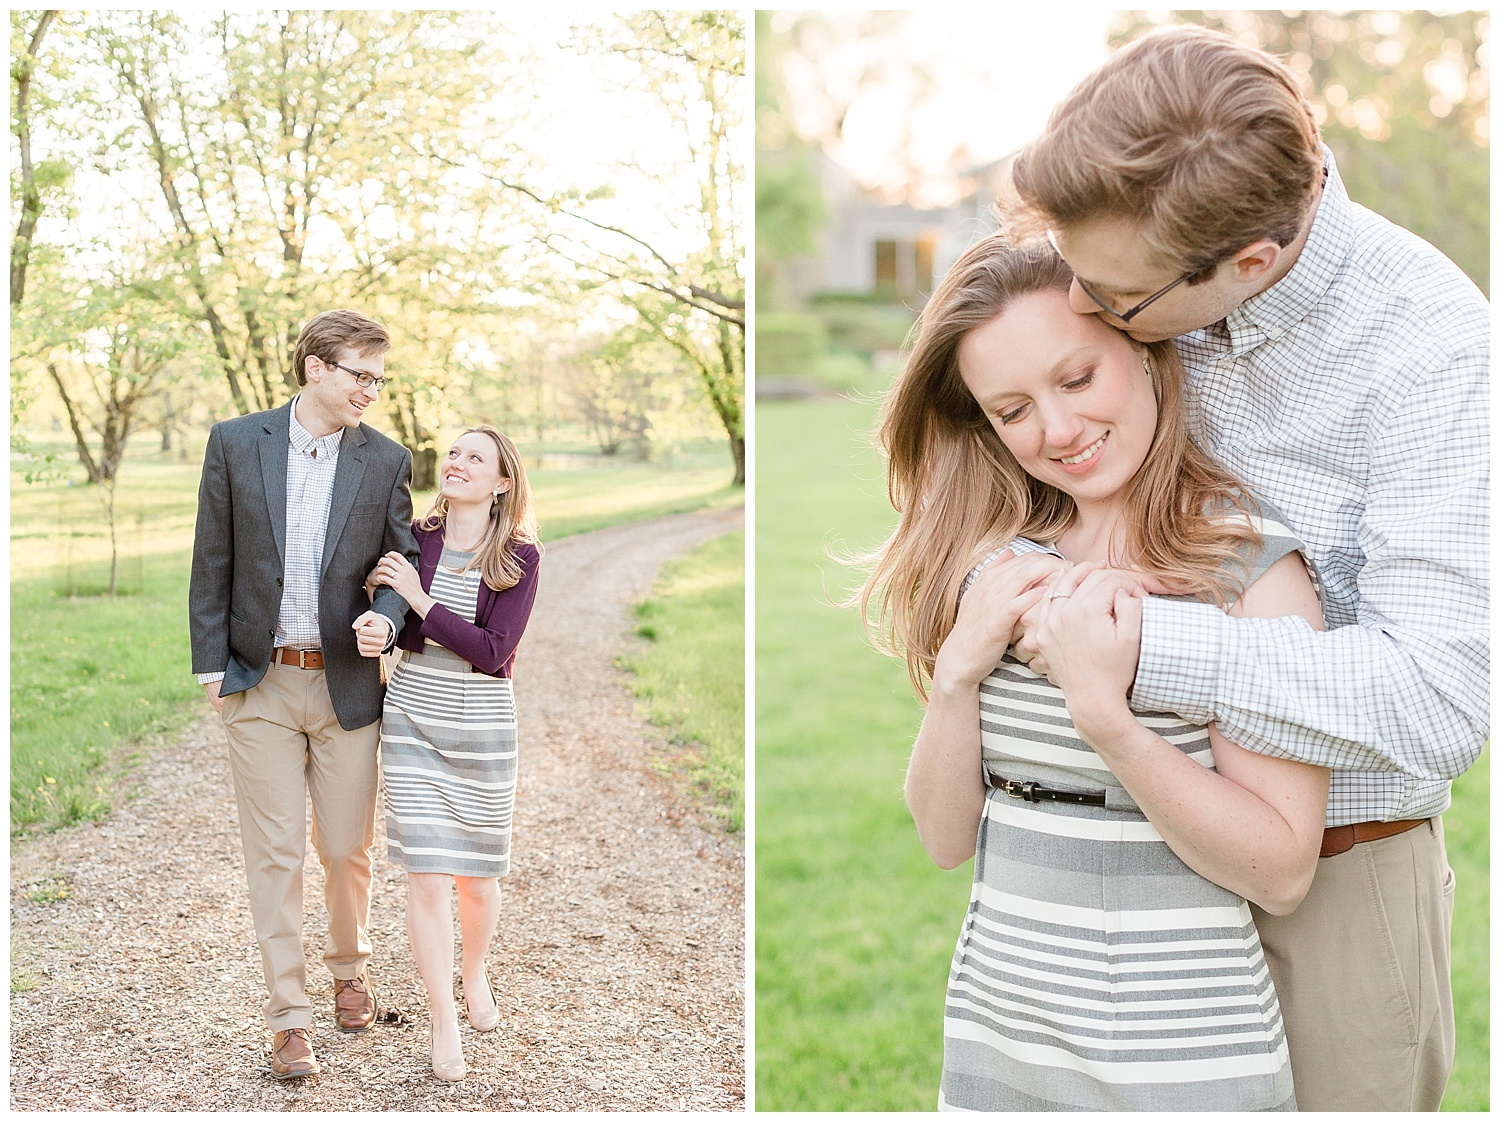 morton-arboretum-lisle-wedding-photographer-summer-engagement-session_0008.jpg